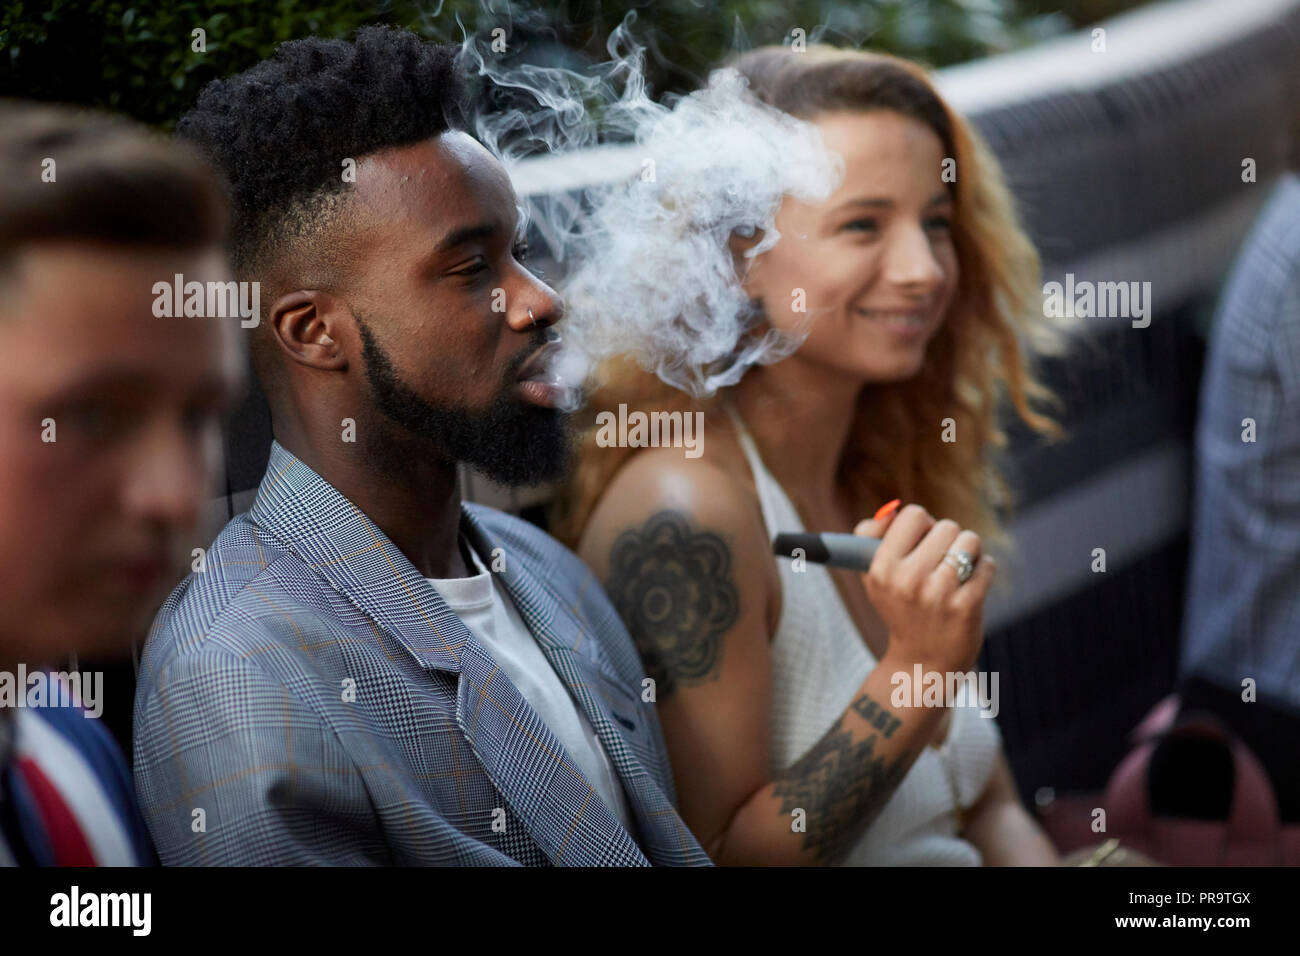 people smoking using vape happing pens in Manchester - Stock Image